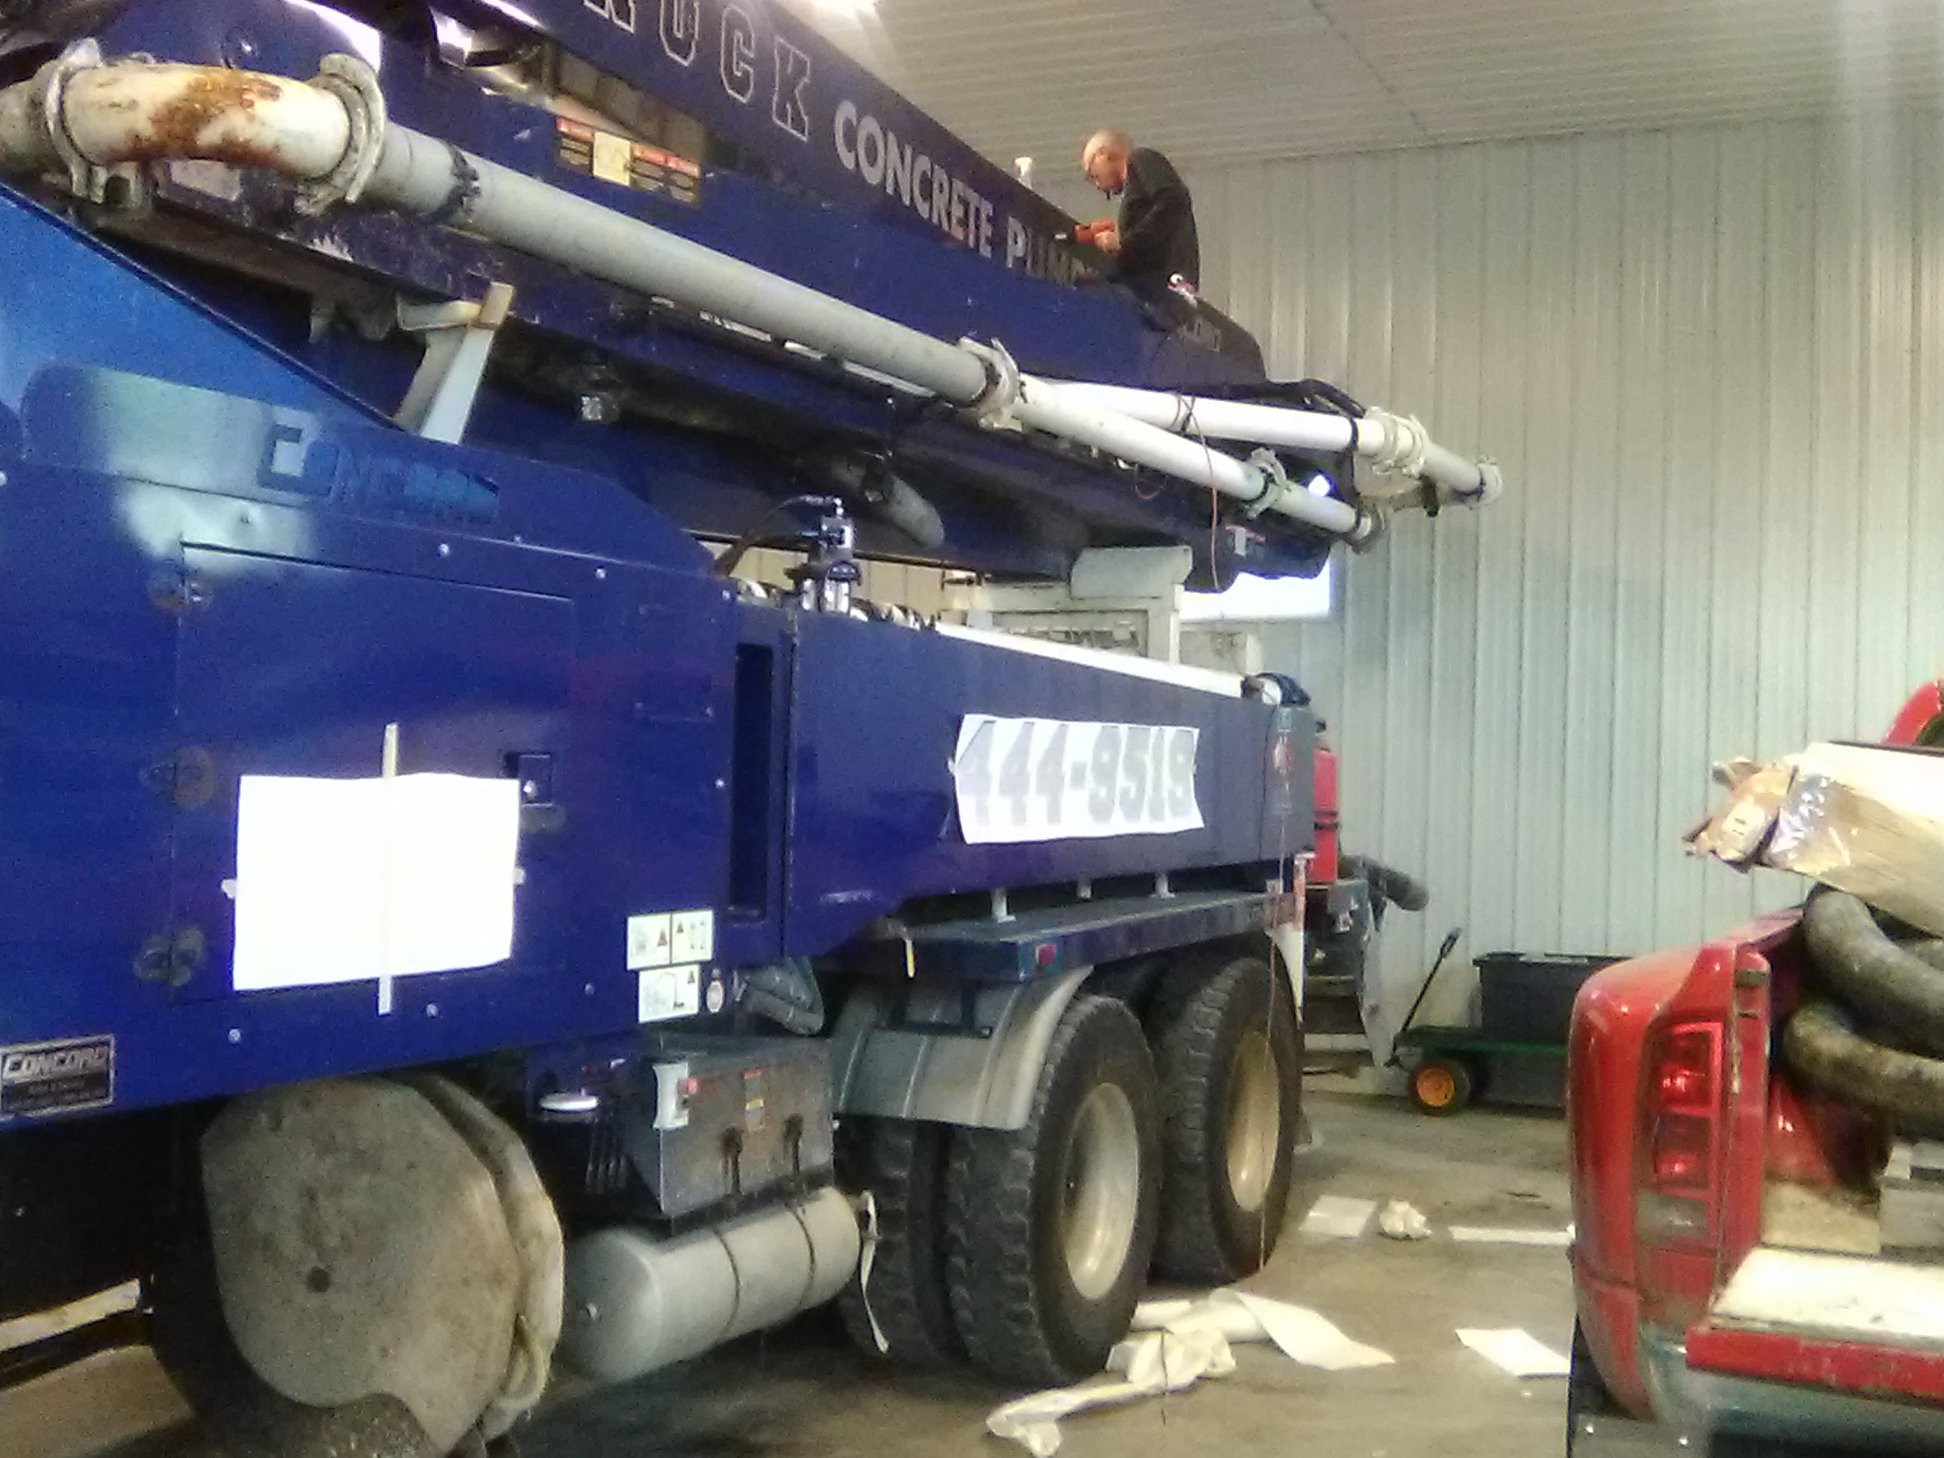 Vehicle Decals for Canuck Concrete Pumping